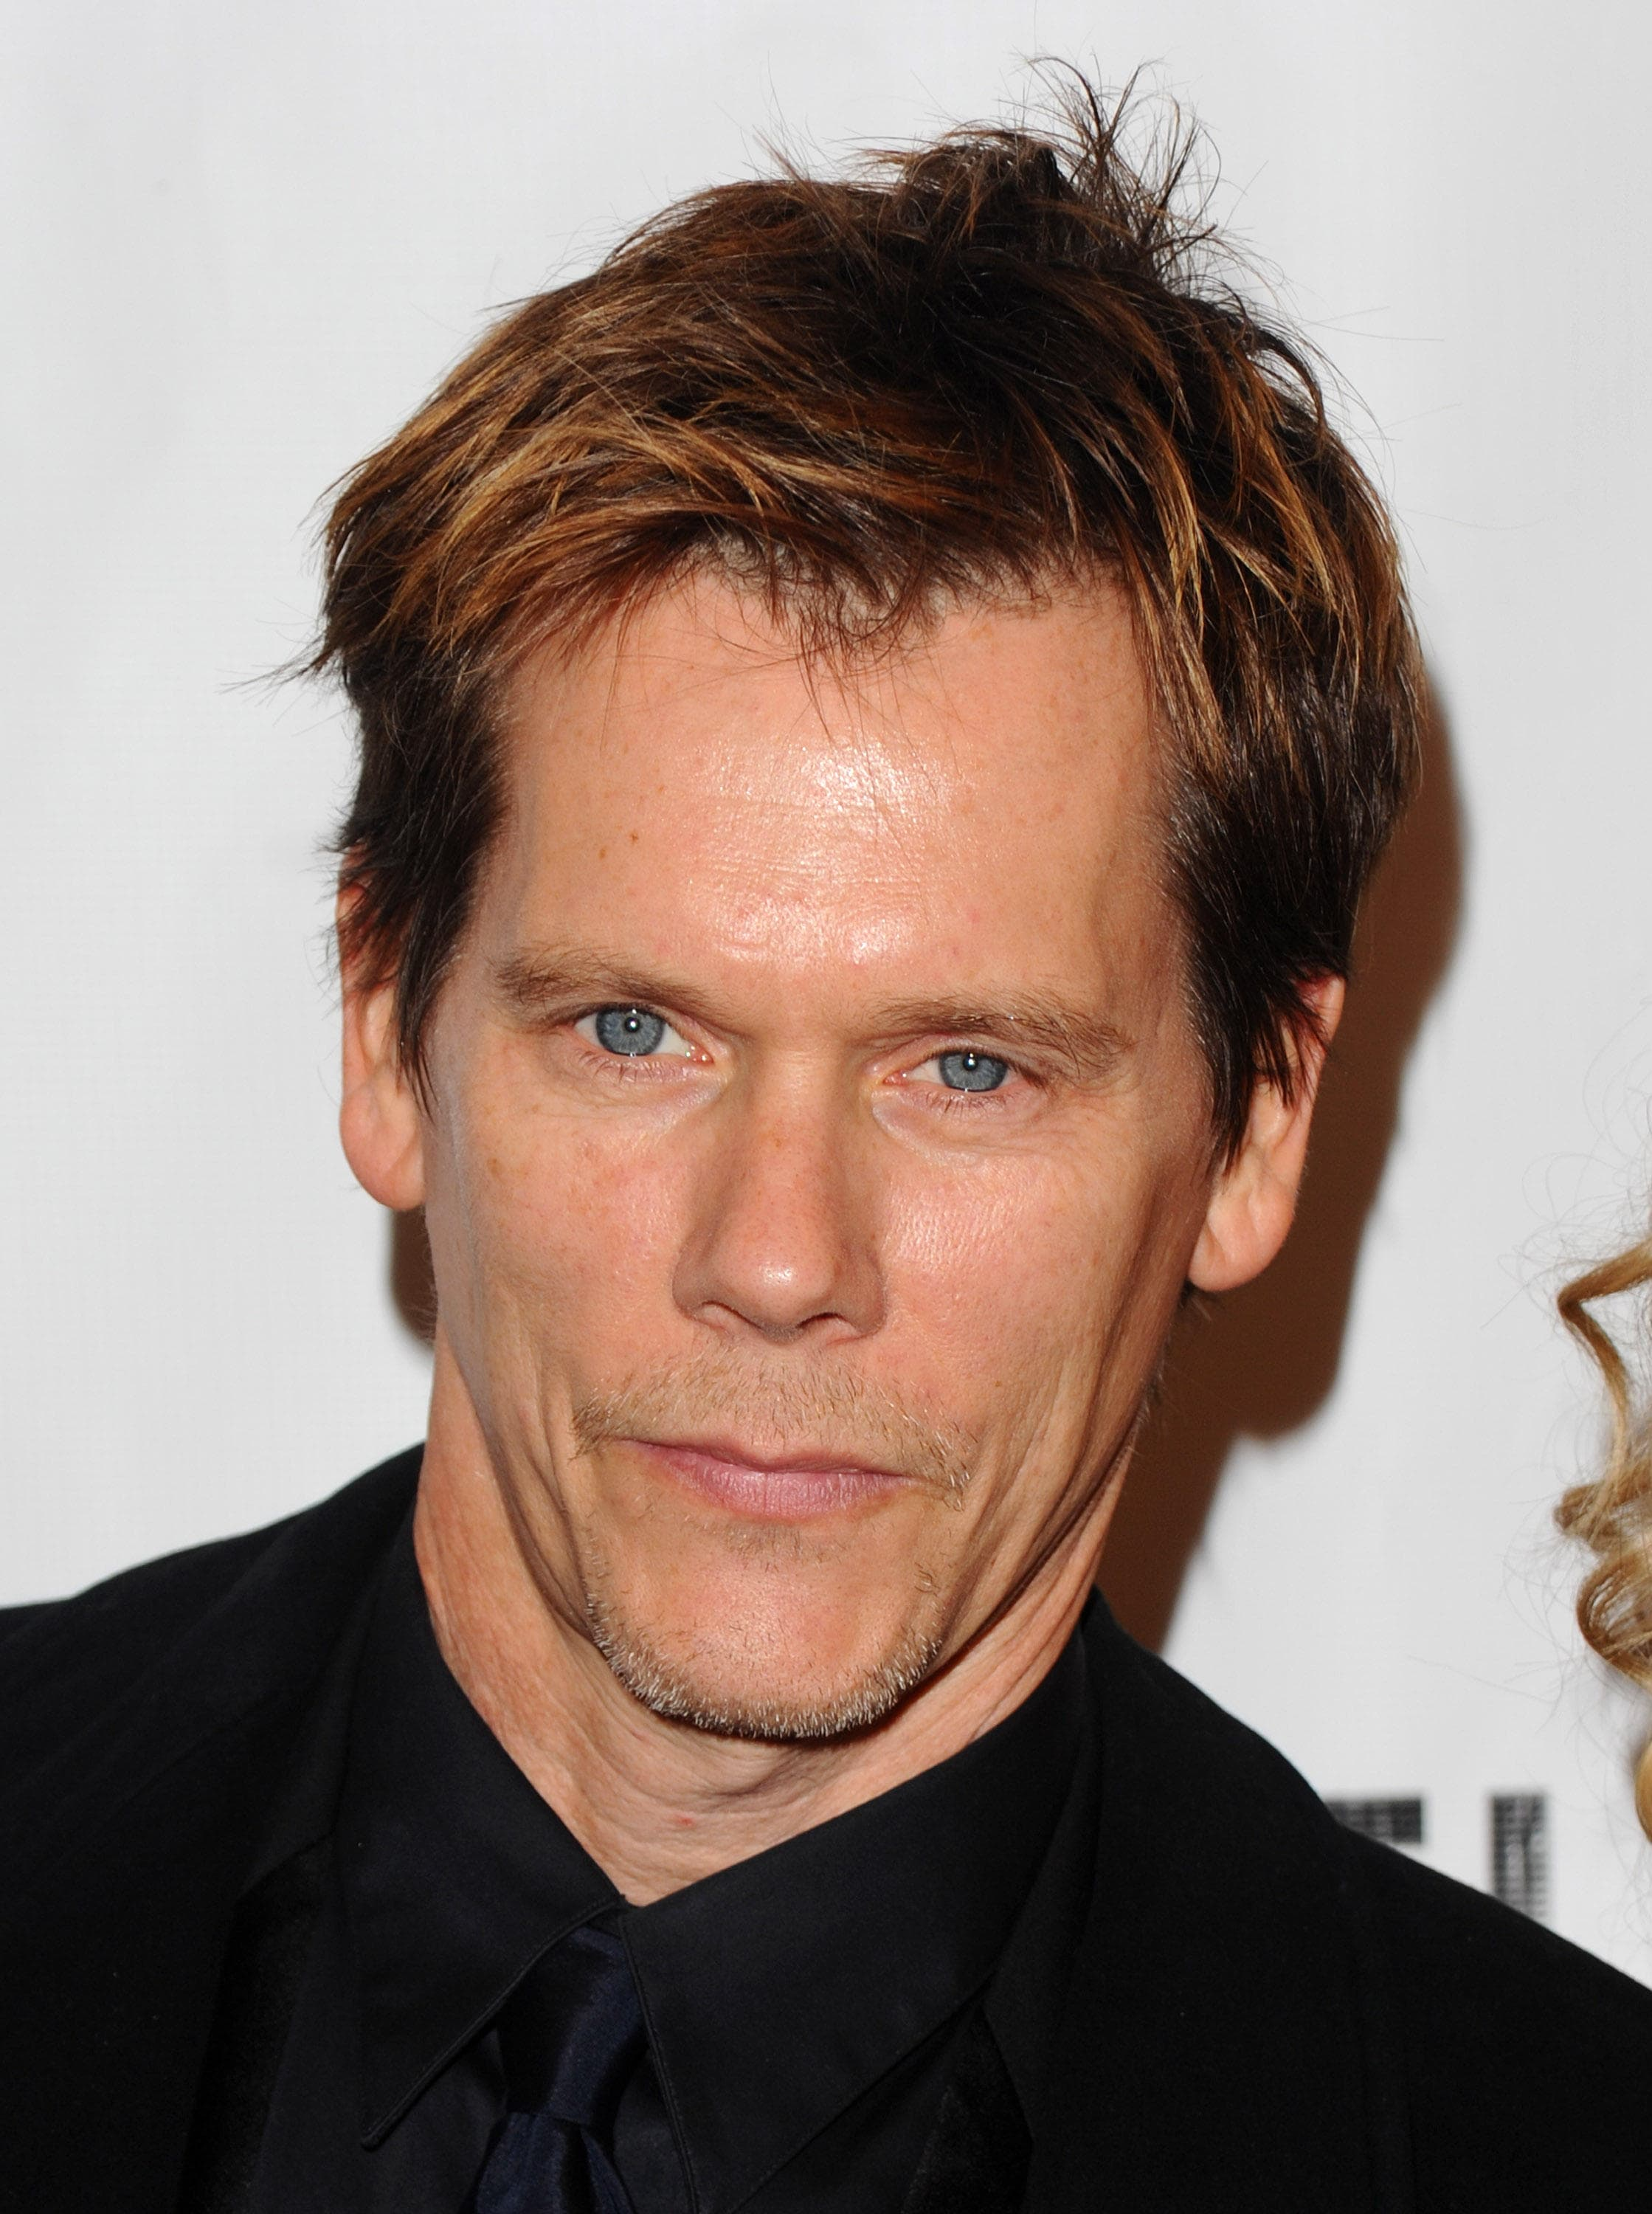 Kevin Bacon HD Wallpapers 7wallpapersnet 2239x3000